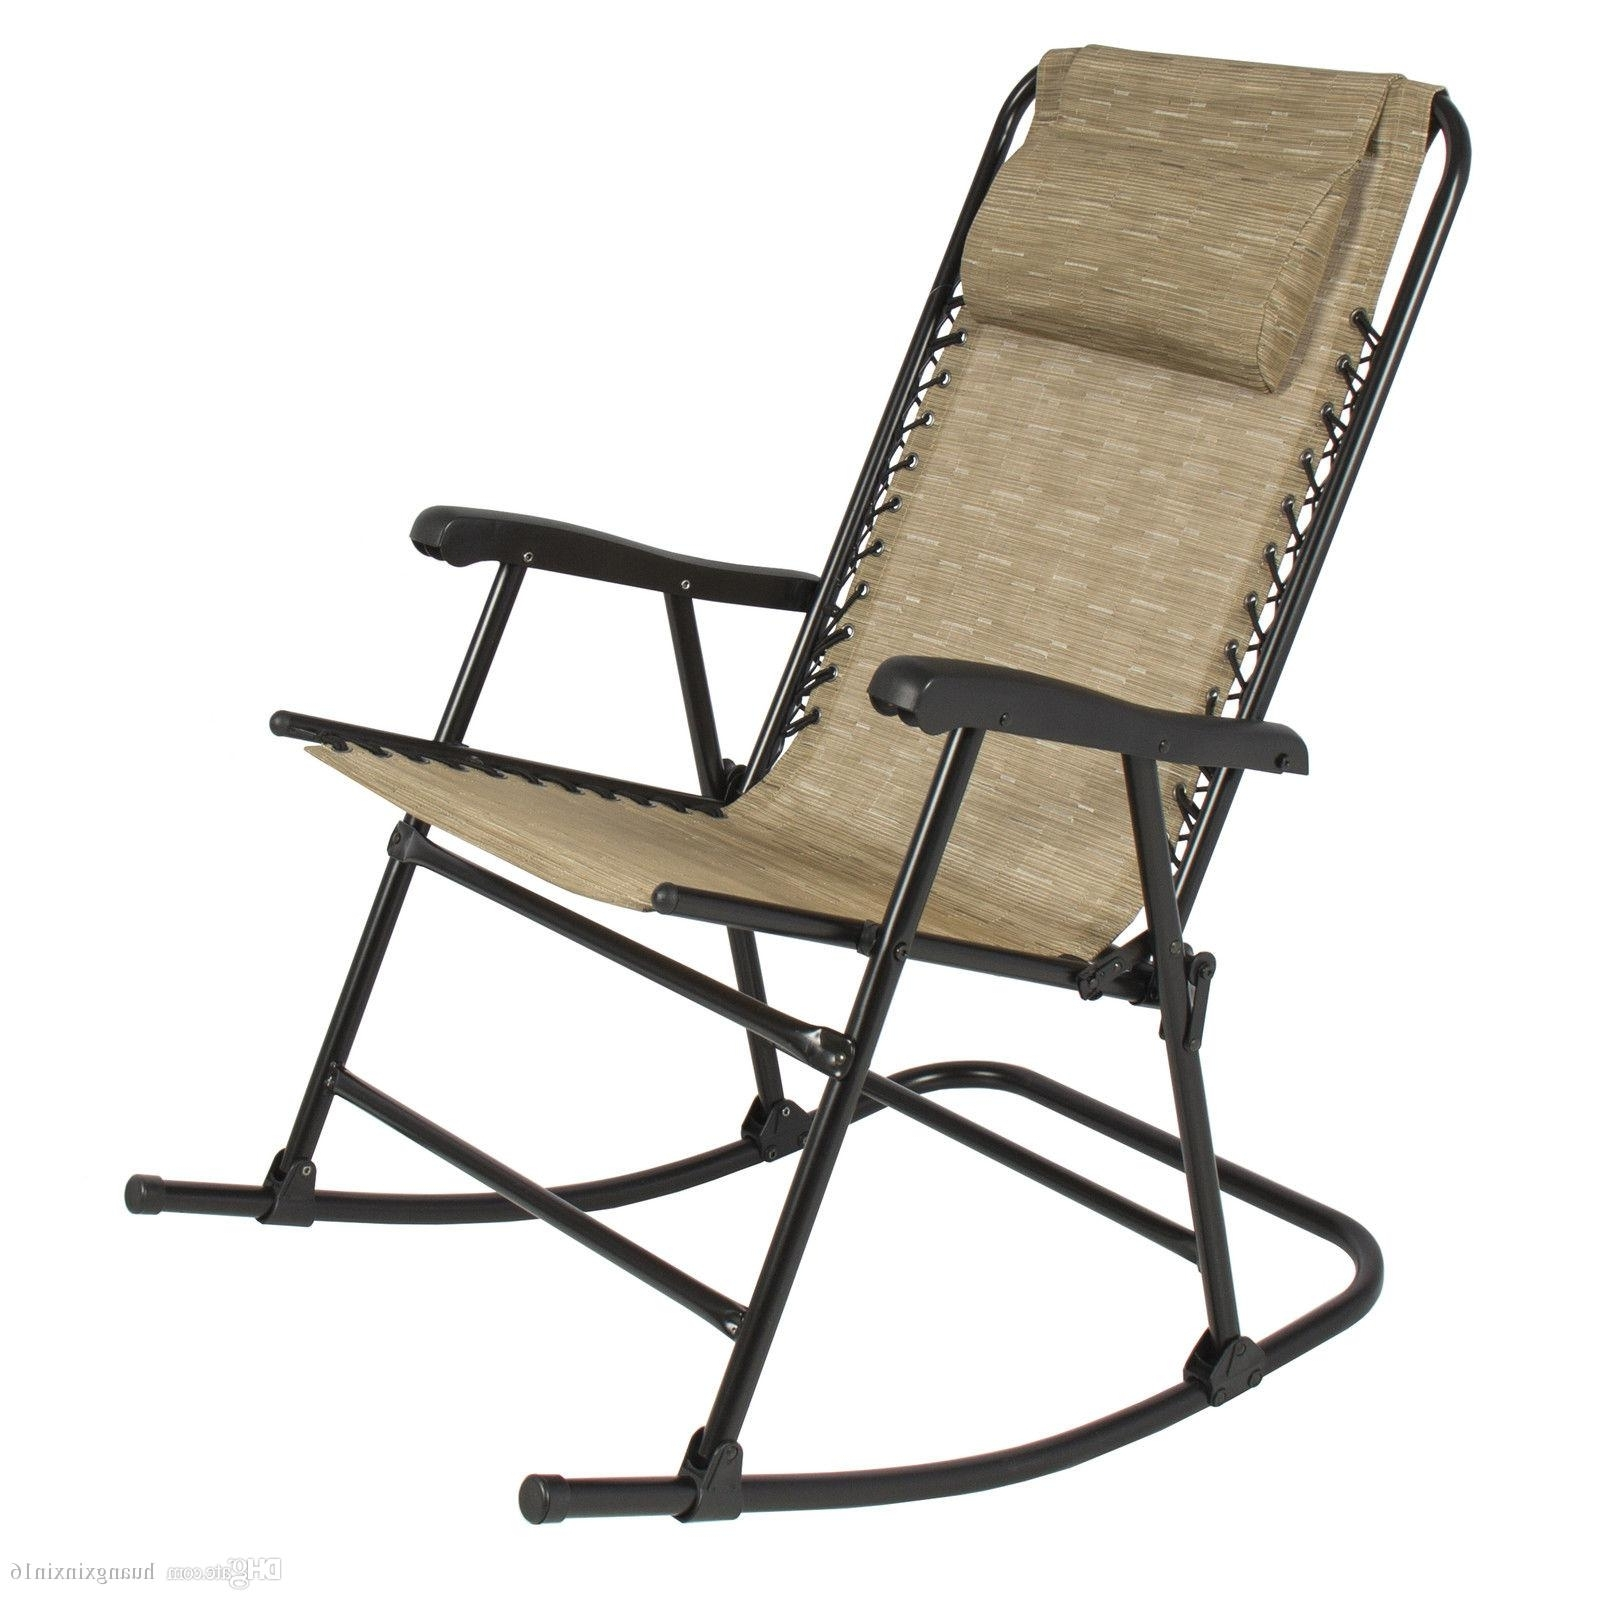 Best Best Choice Products Folding Rocking Chair Rocker Outdoor Patio Intended For Favorite Folding Rocking Chairs (View 2 of 15)